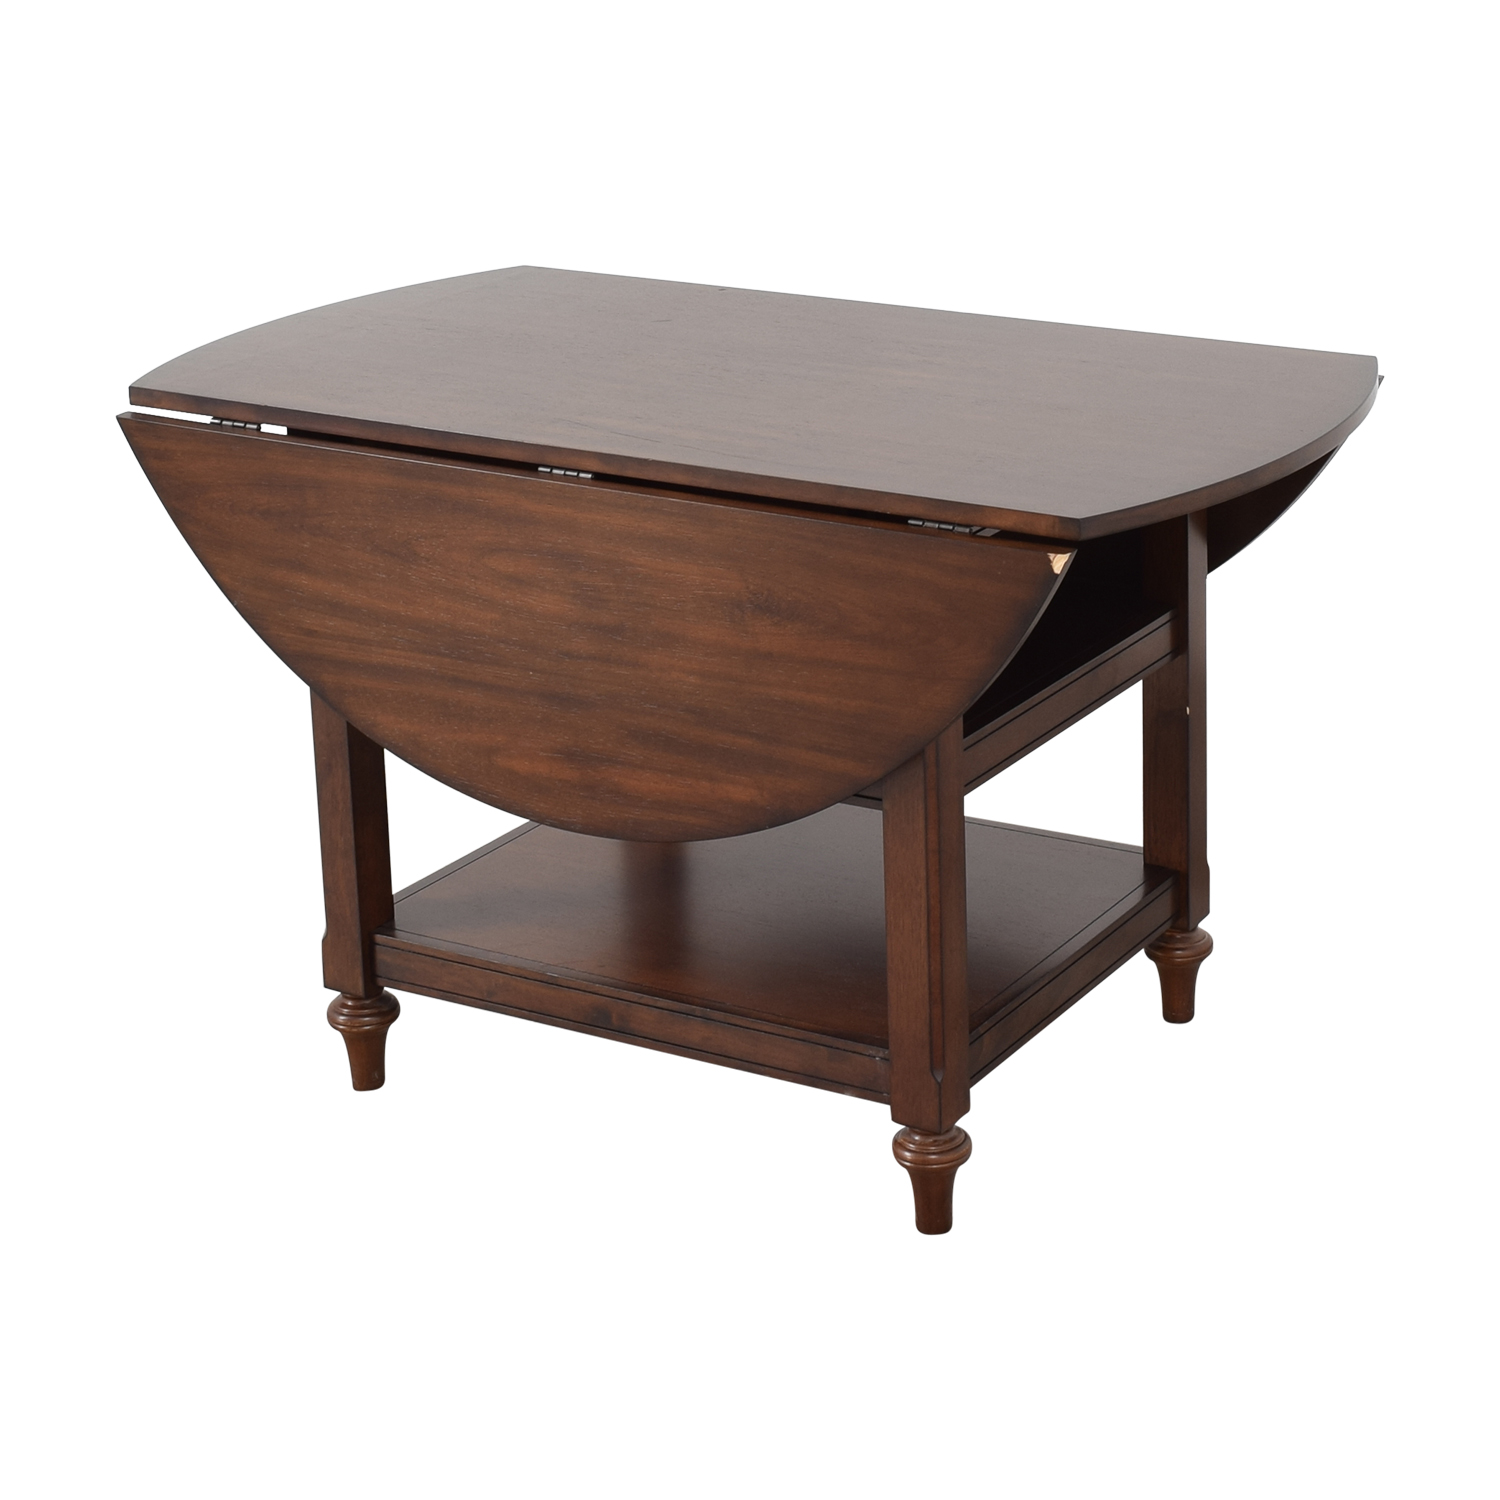 Pottery Barn Pottery Barn Drop Leaf Kitchen Table for sale